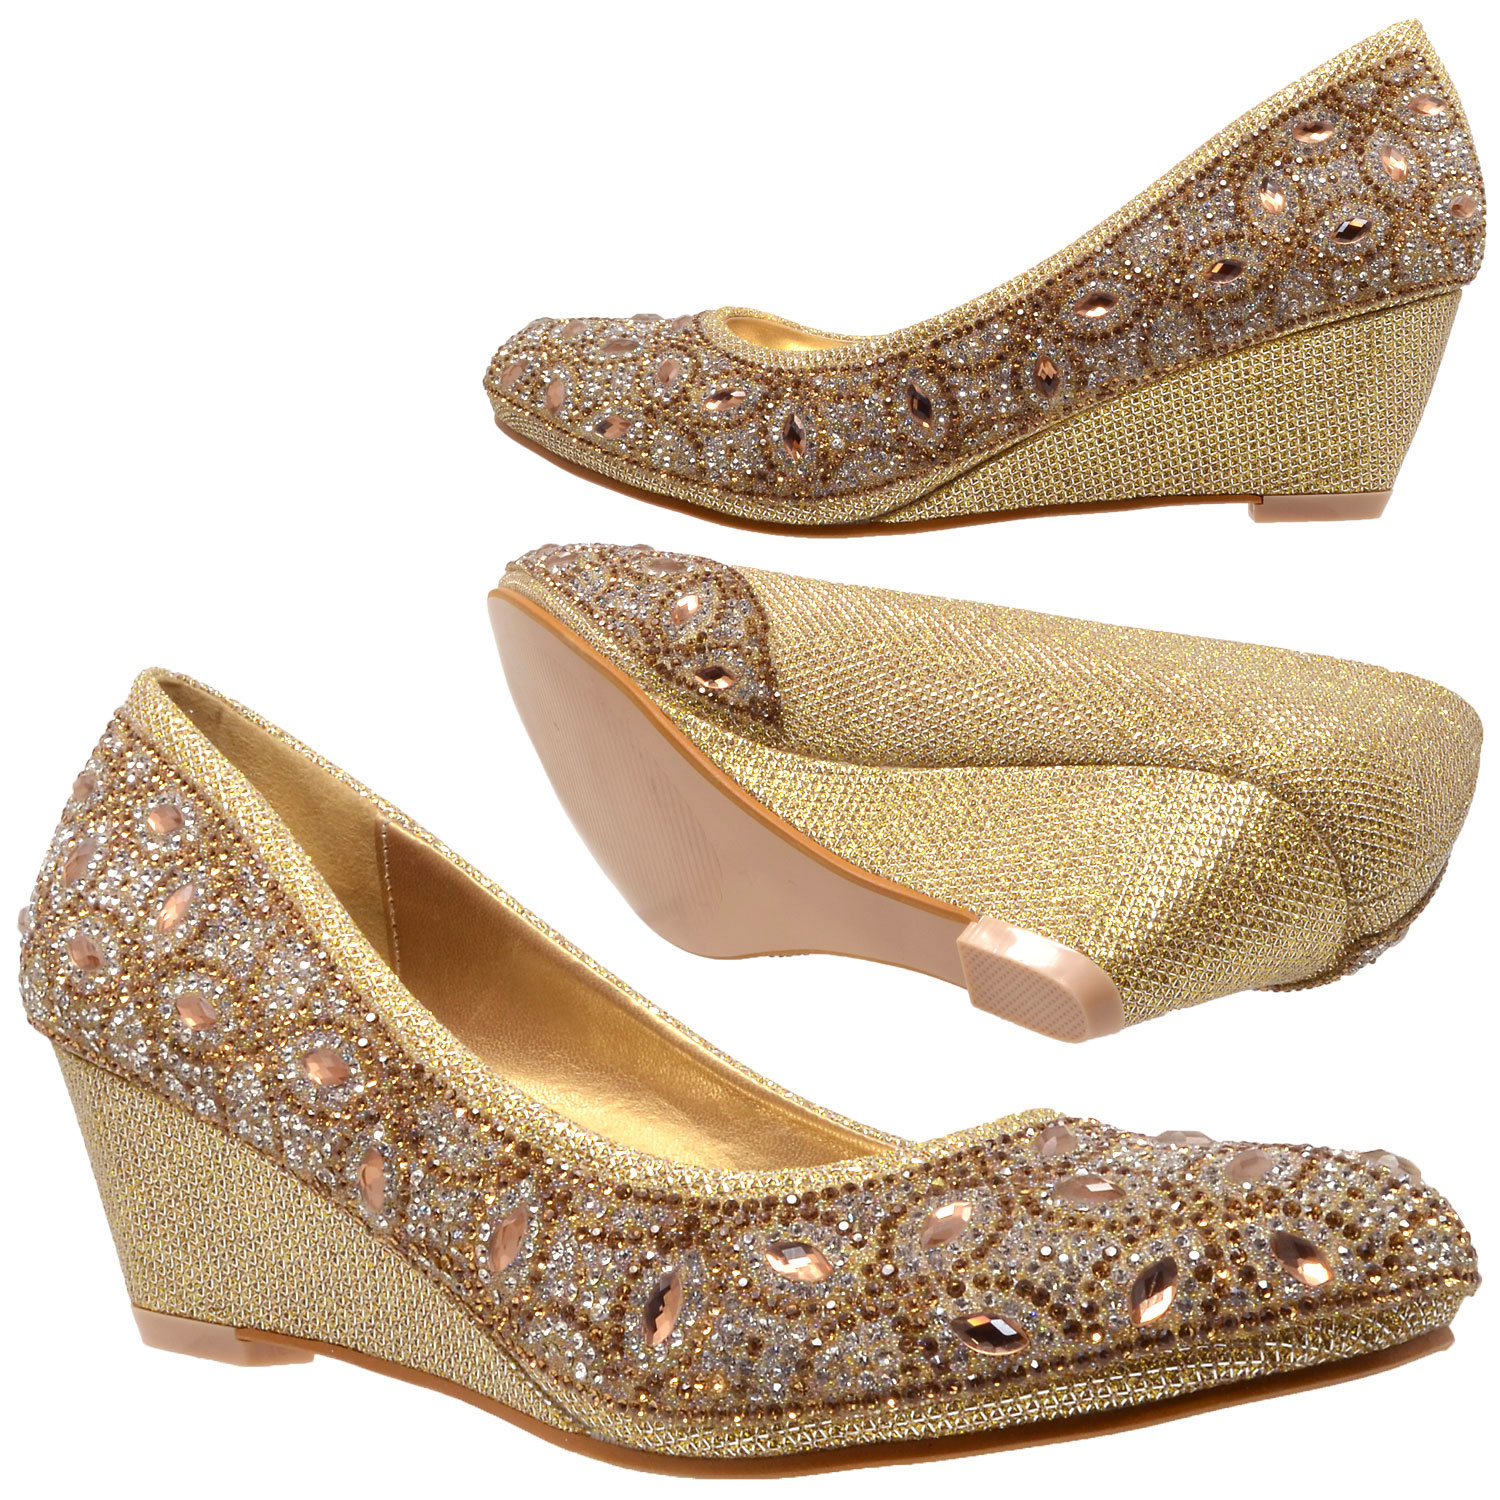 4643bfa8225b54 Details about Womens Dress Shoes Slip On Wedge Pumps Rhinestone Jewel High  Heels Gold